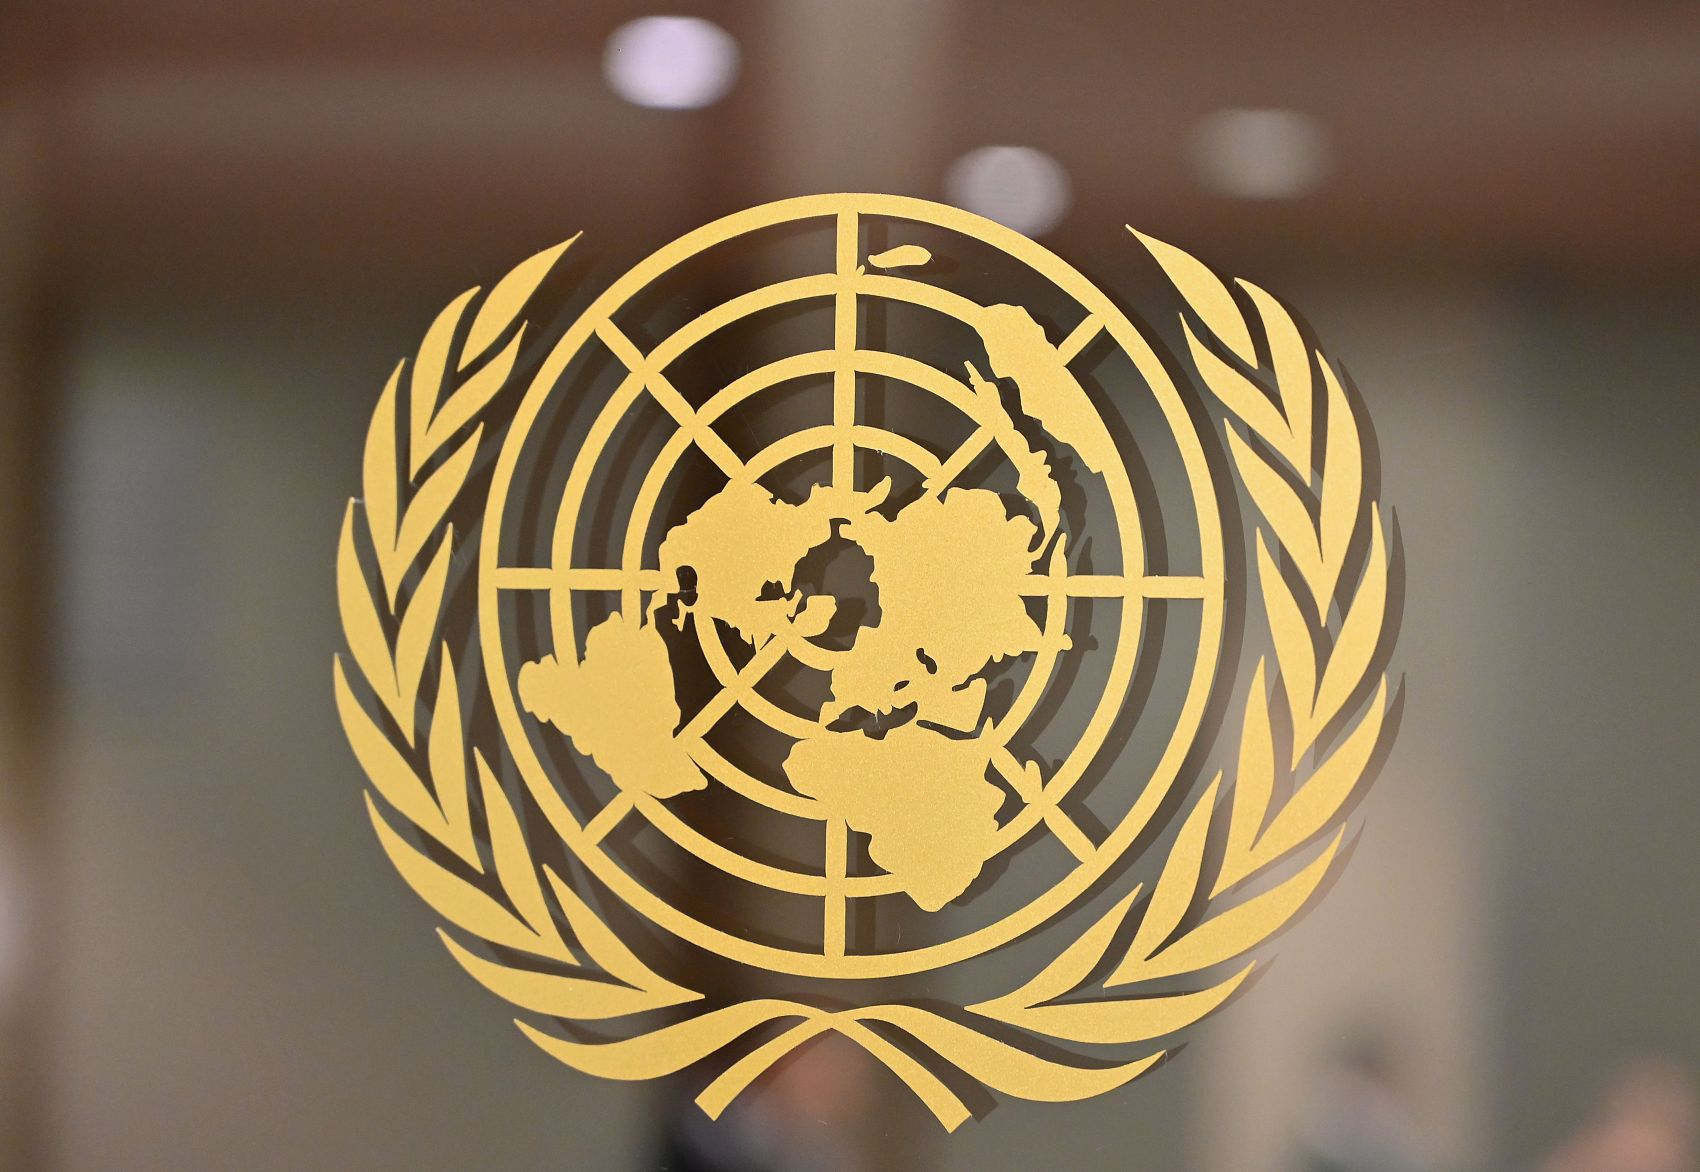 UN urges solidarity, cooperation as global COVID-19 cases top 30 million